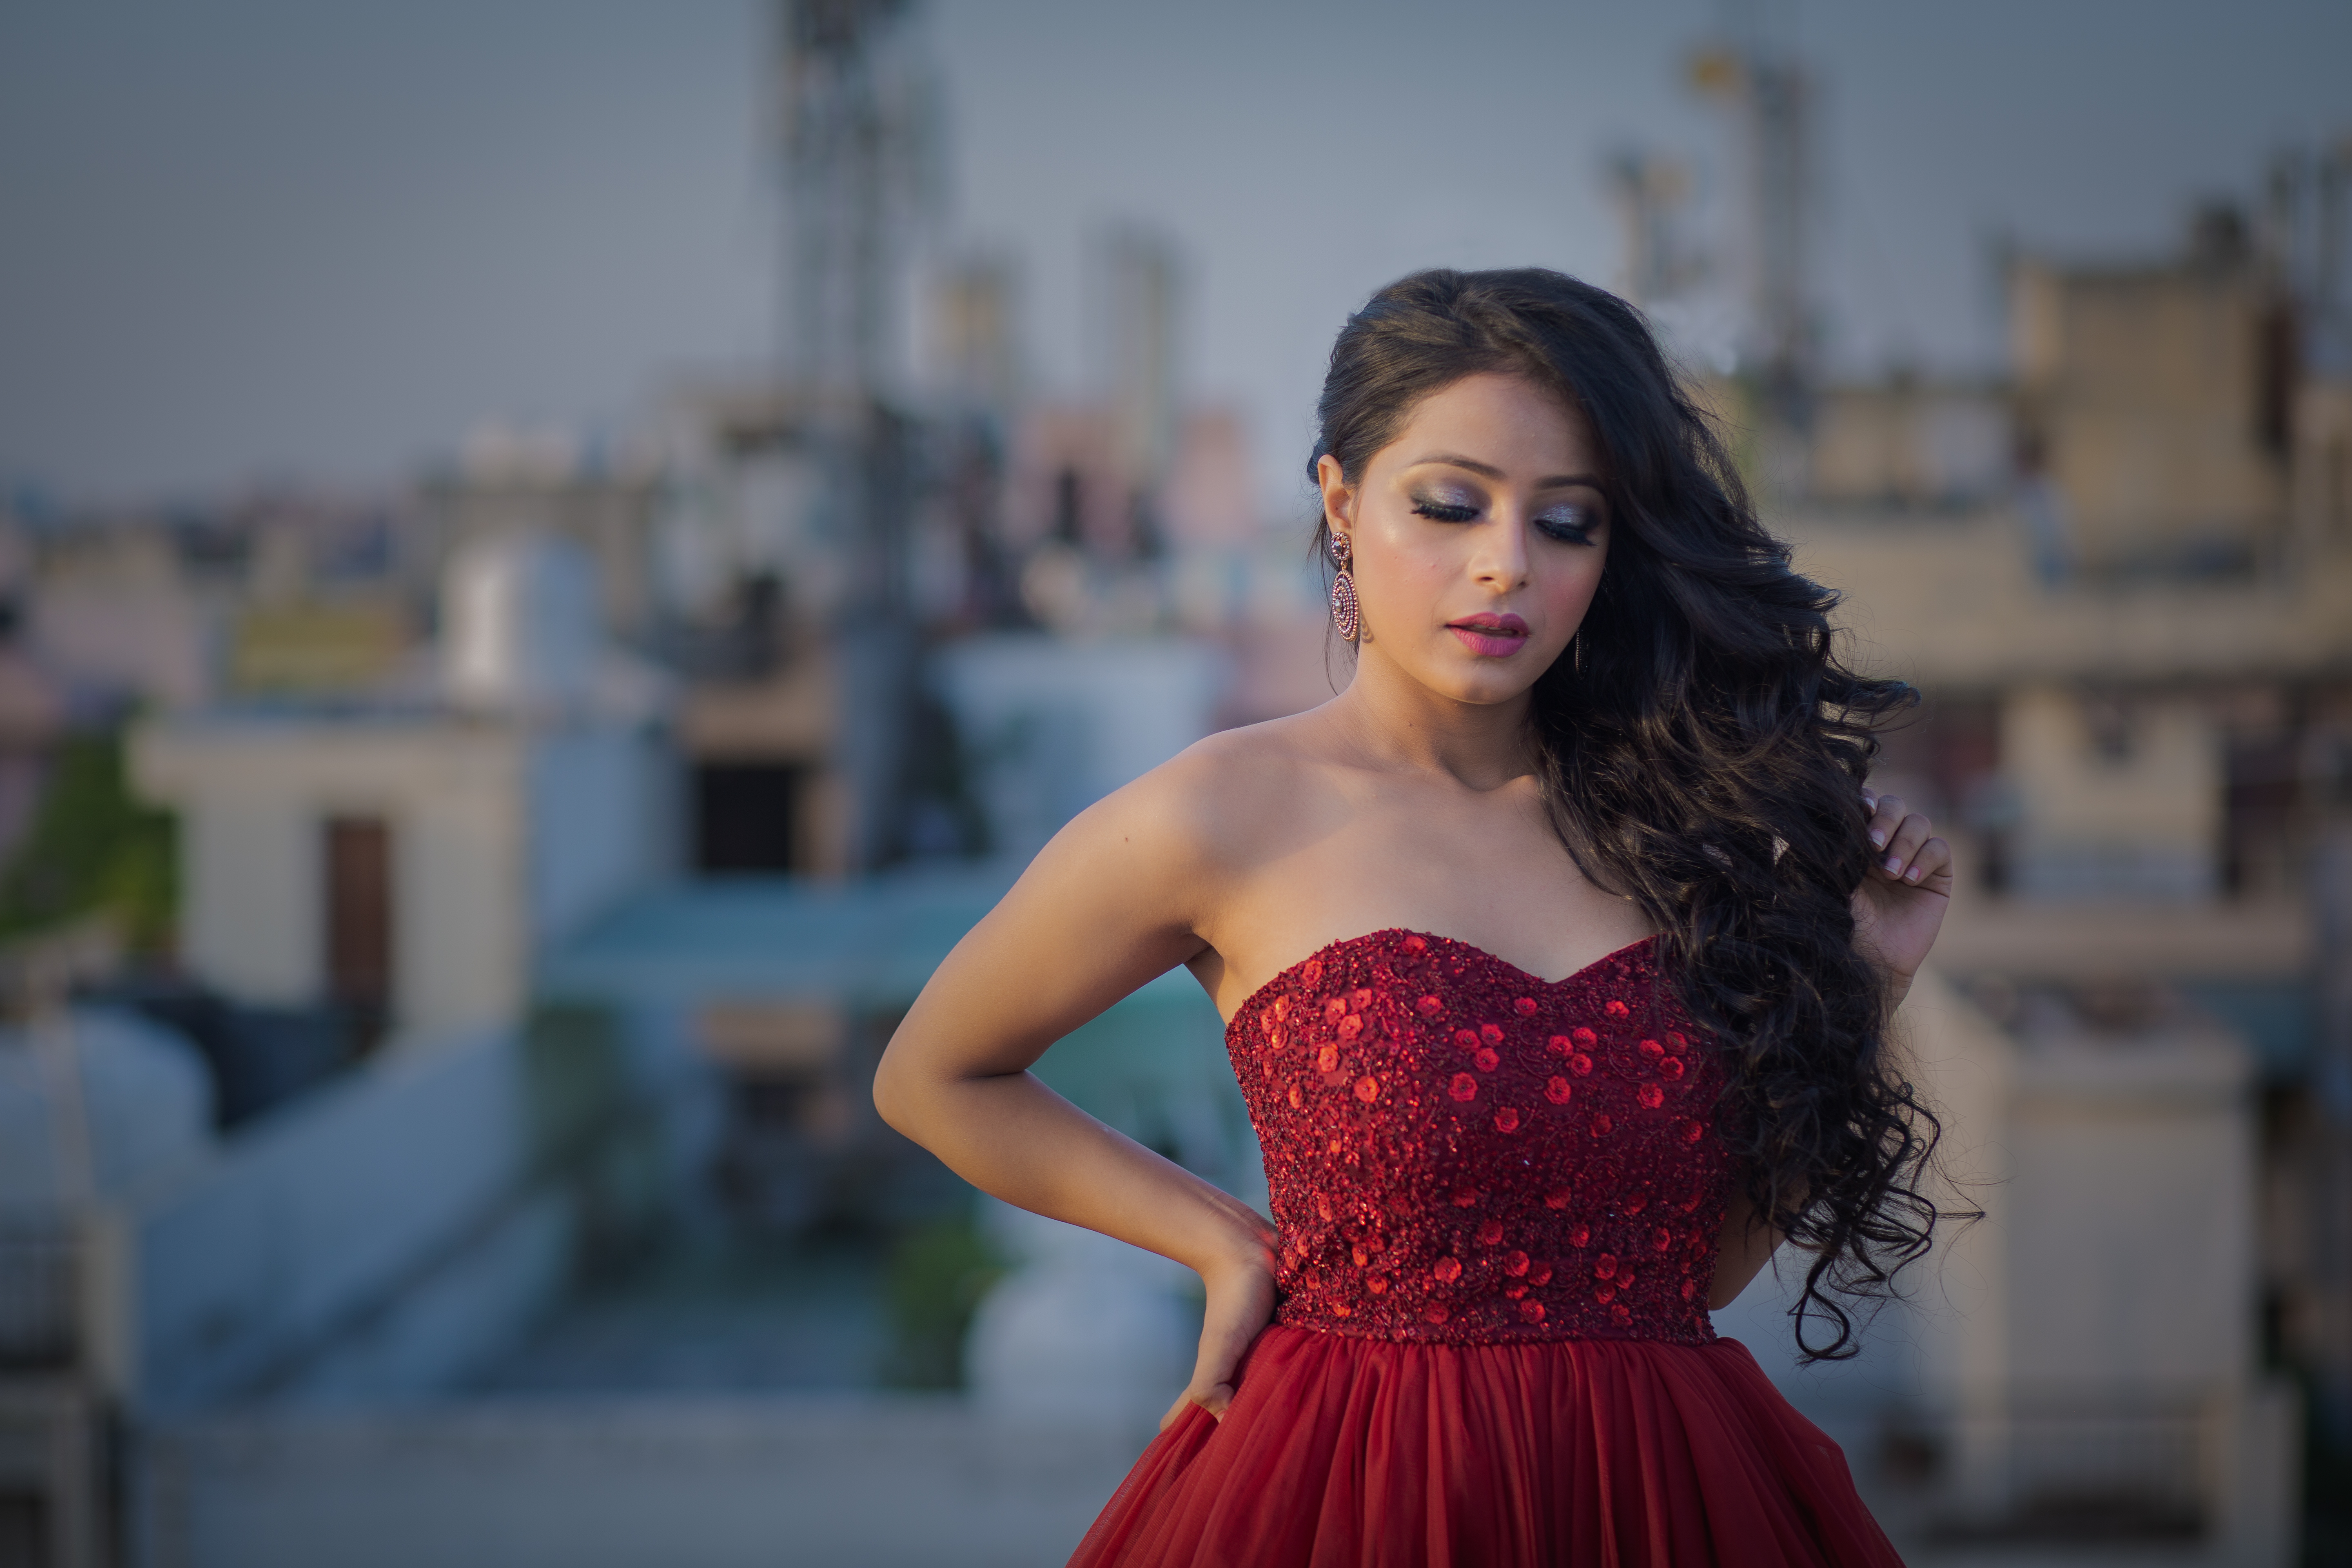 Photo of Standing Woman With Her Eyes Closed in Red Sweetheart Neckline Dress Posing